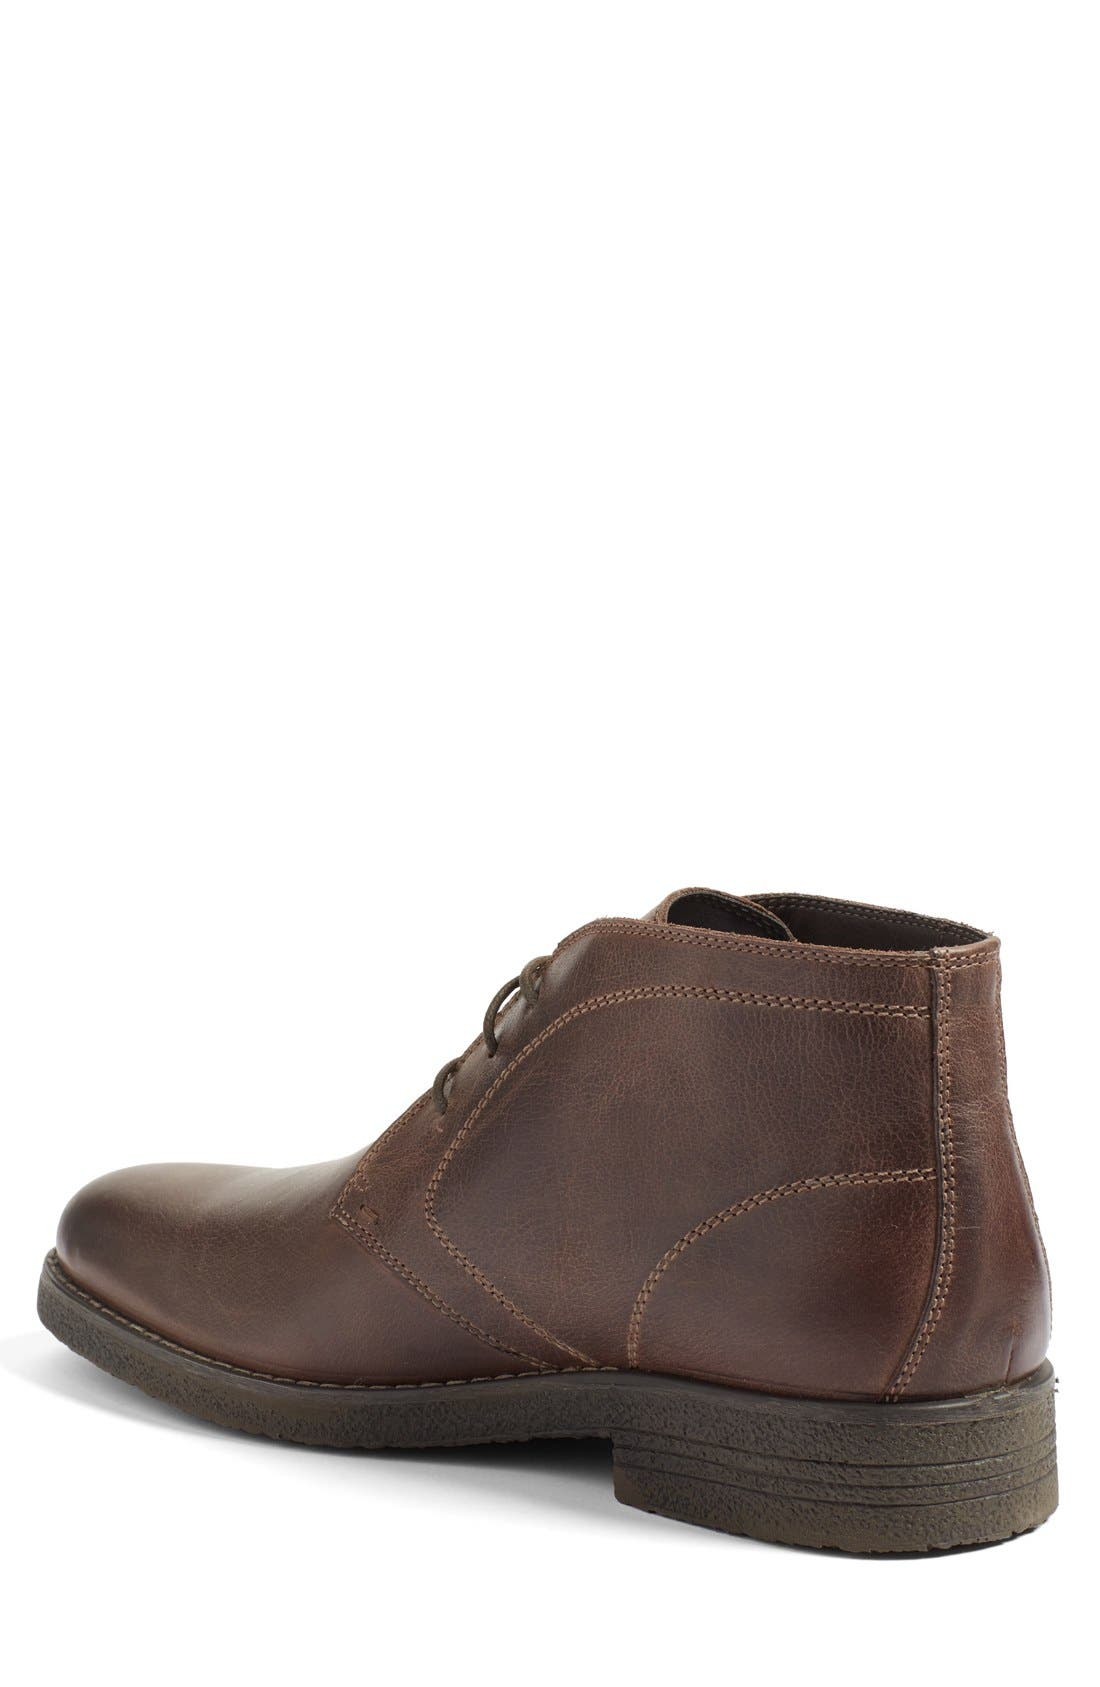 Alternate Image 2  - 1901 'Tyler' Chukka Boot (Men)